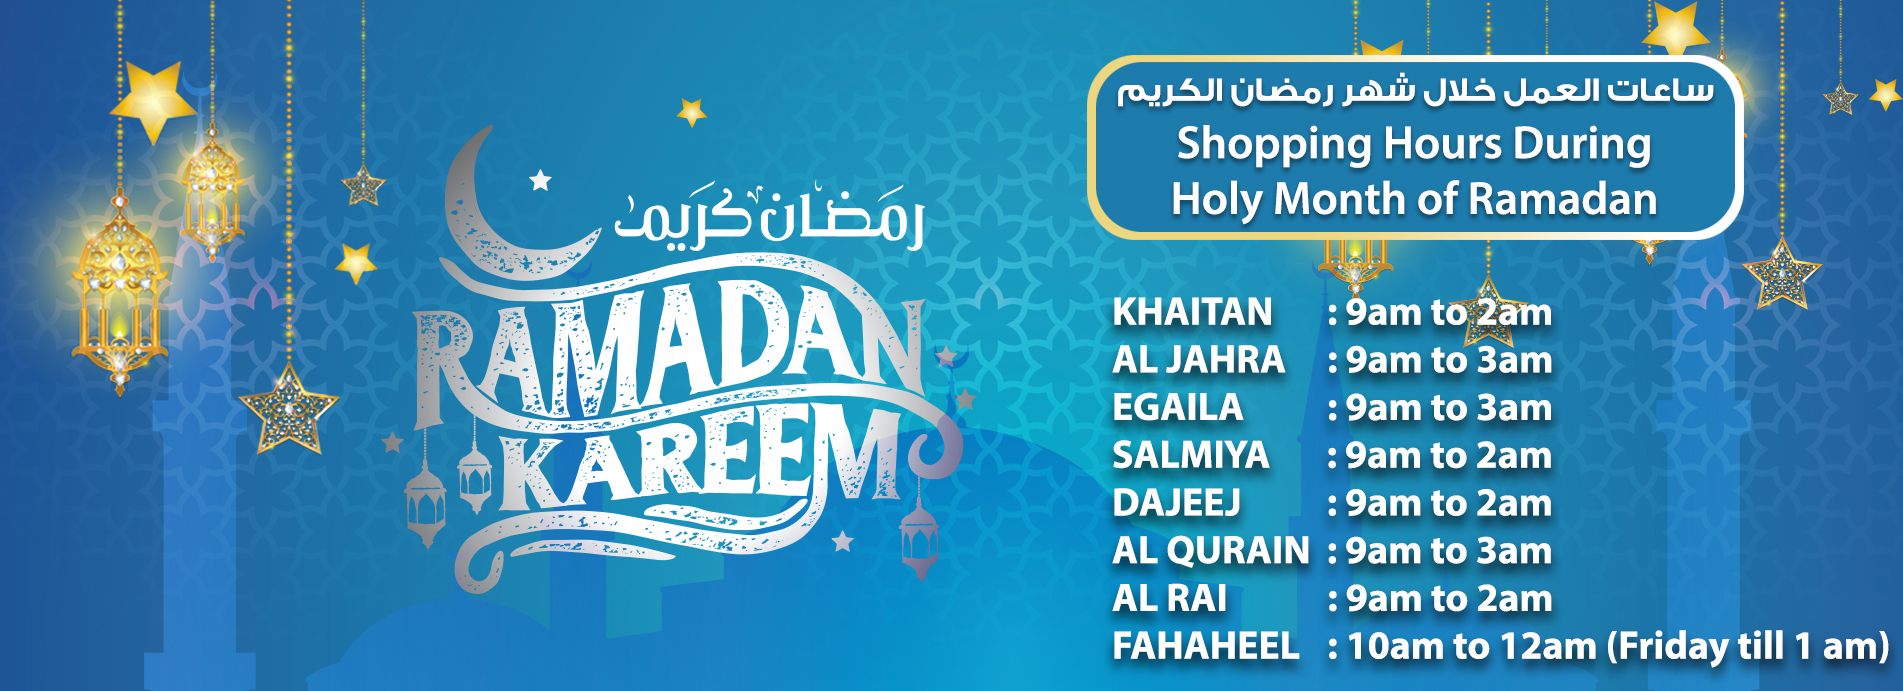 Ramadan Shop Timings.jpg